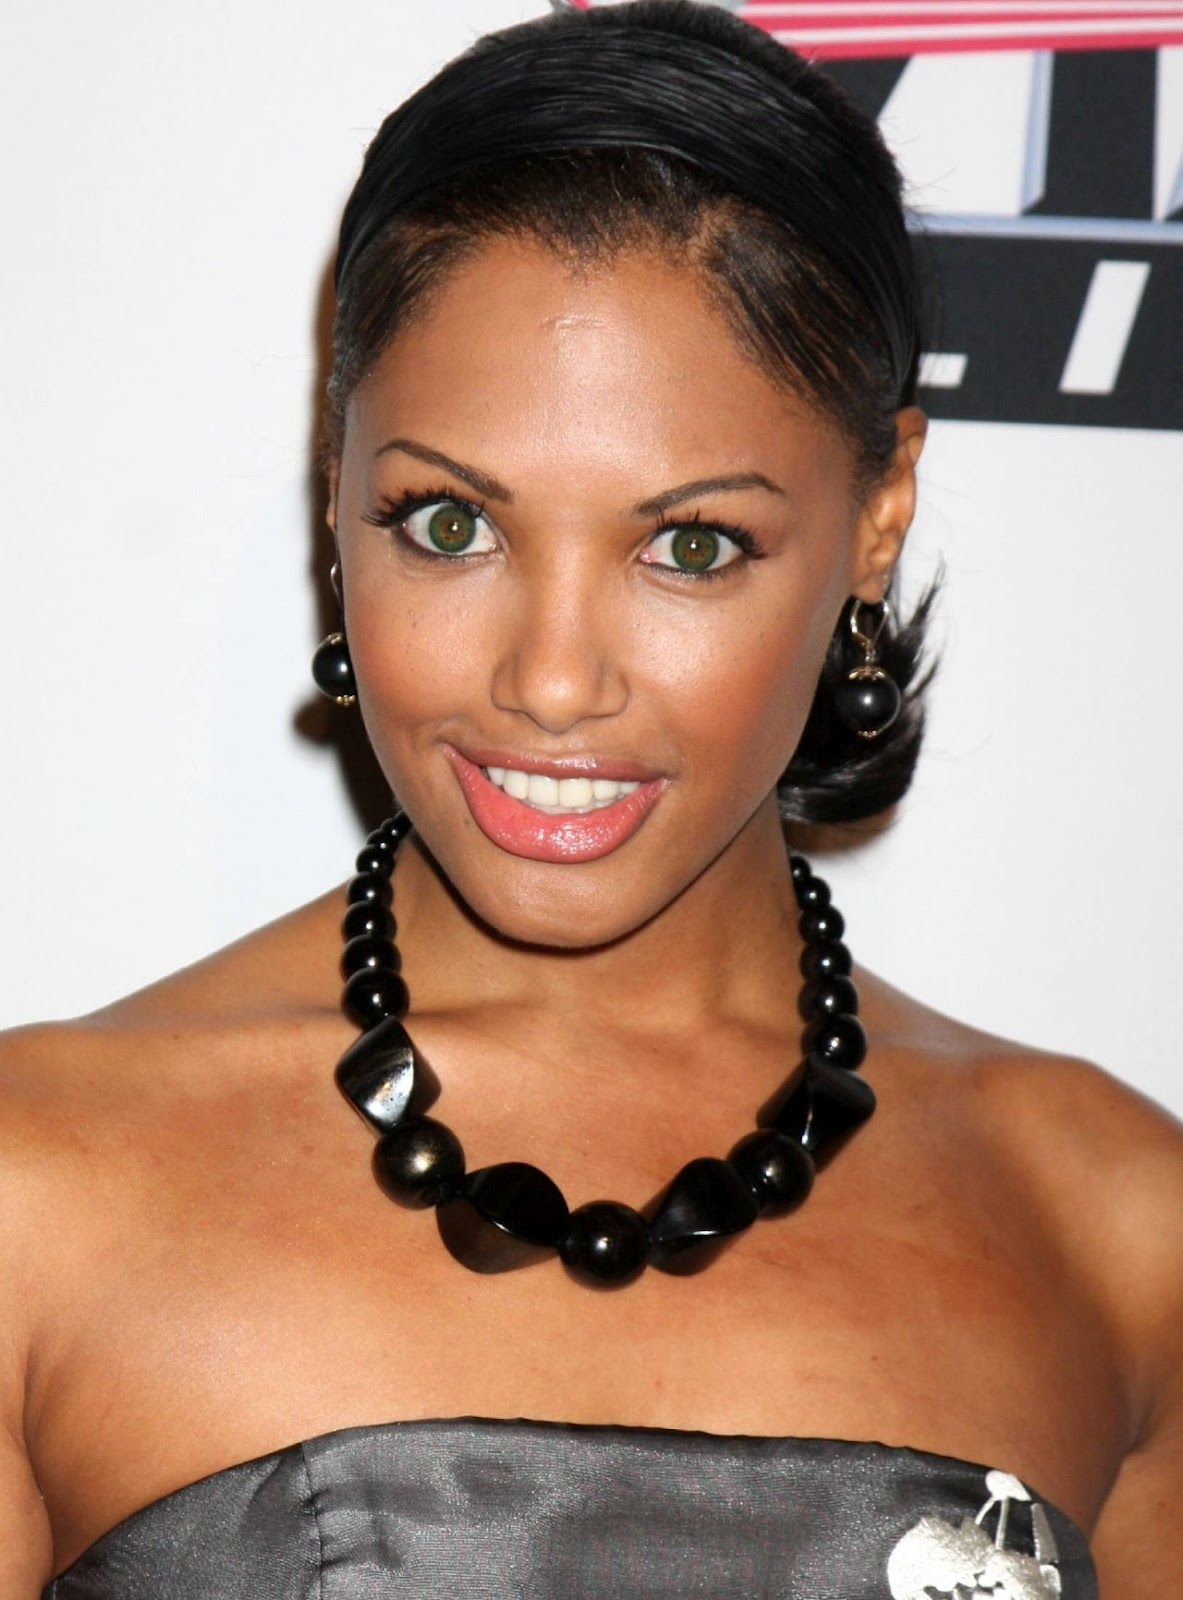 kd aubert eye color